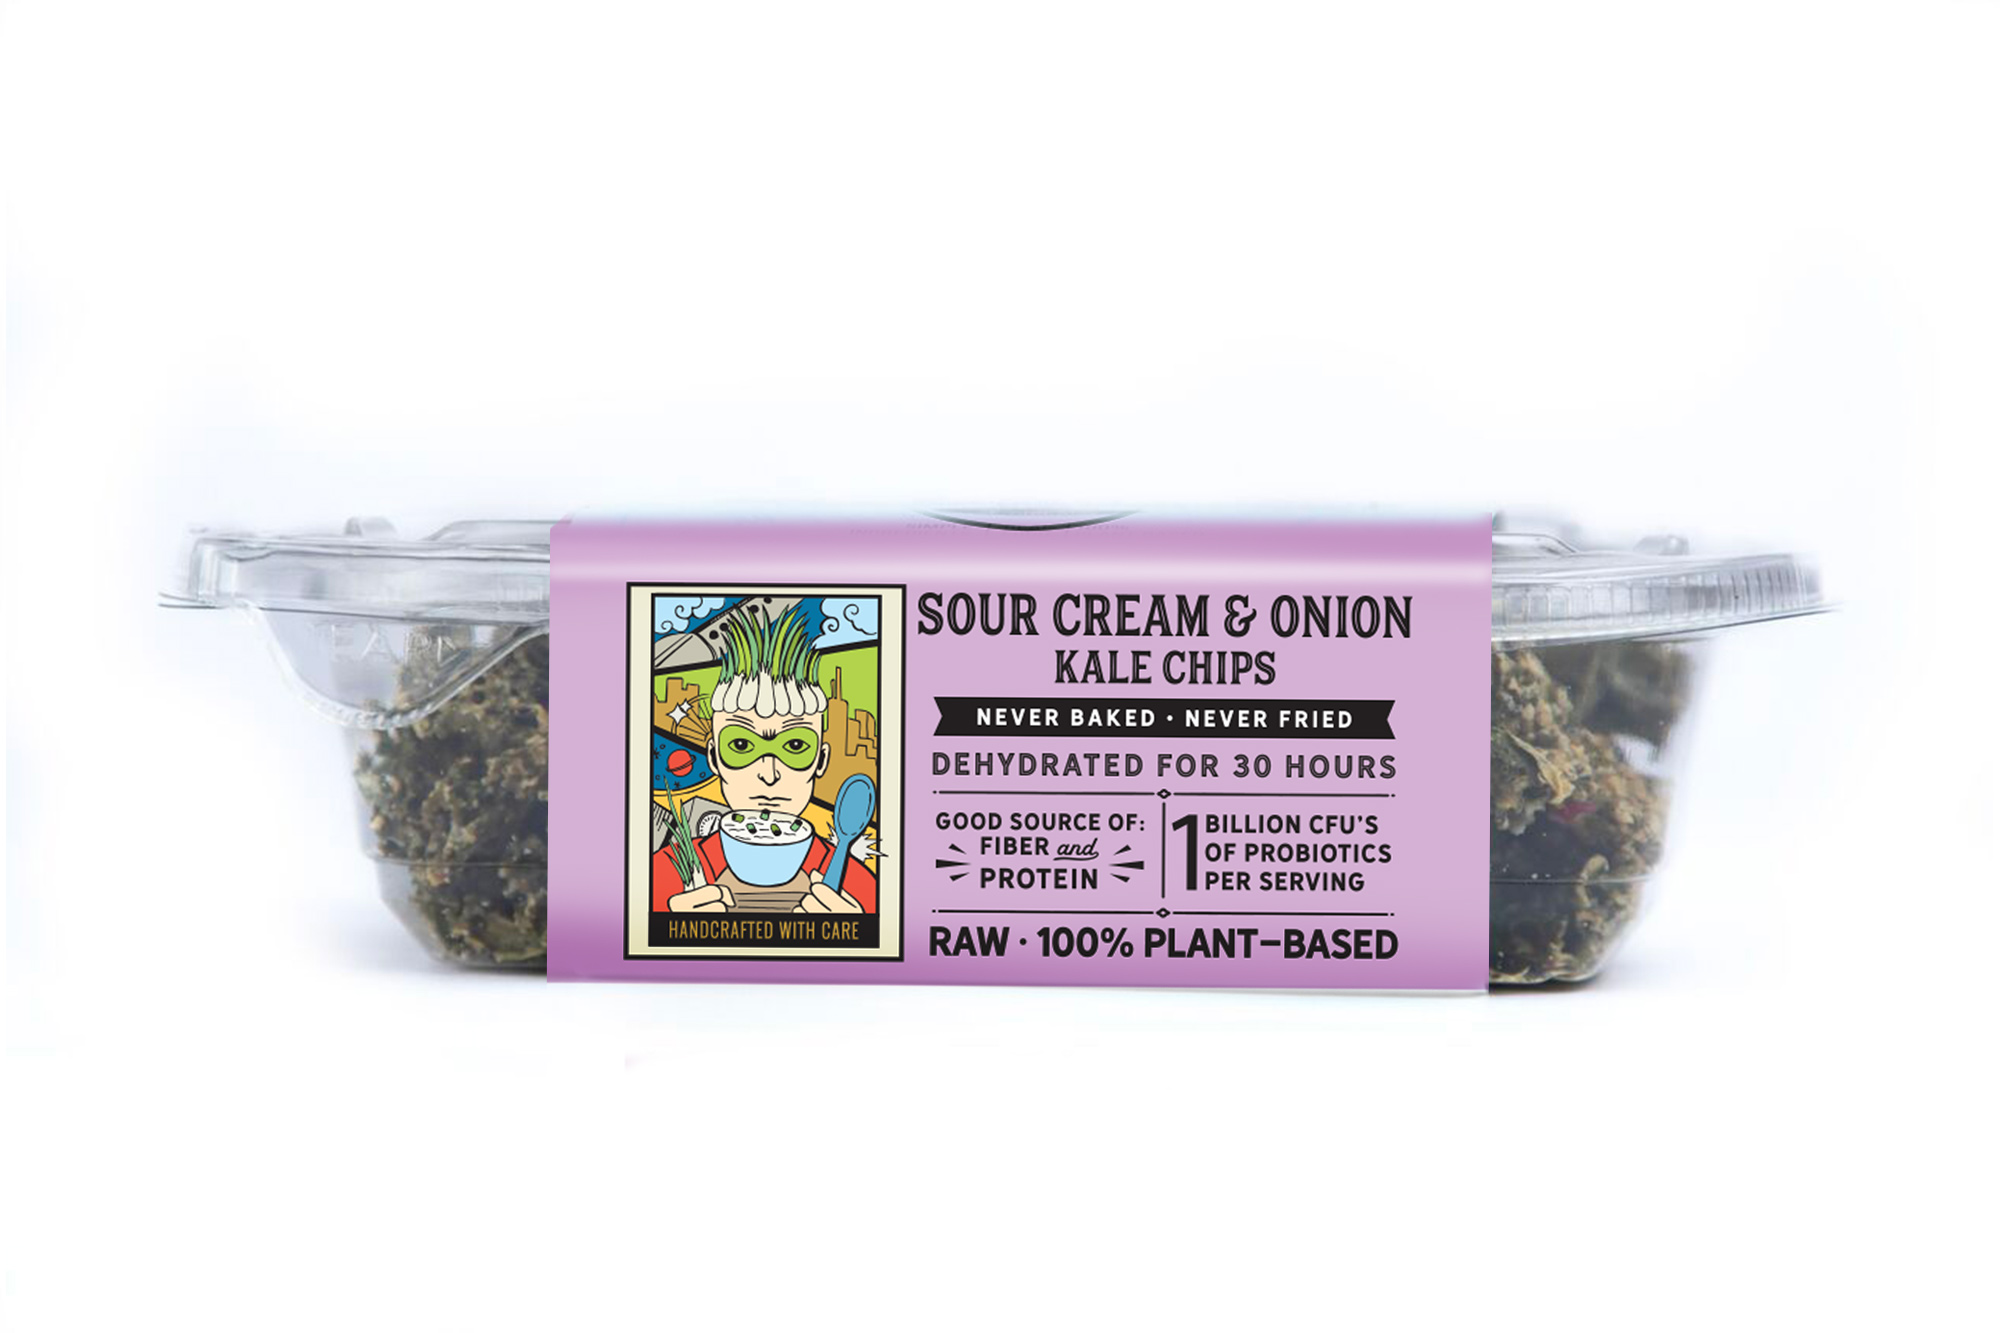 sour cream and onion kale chips side 2